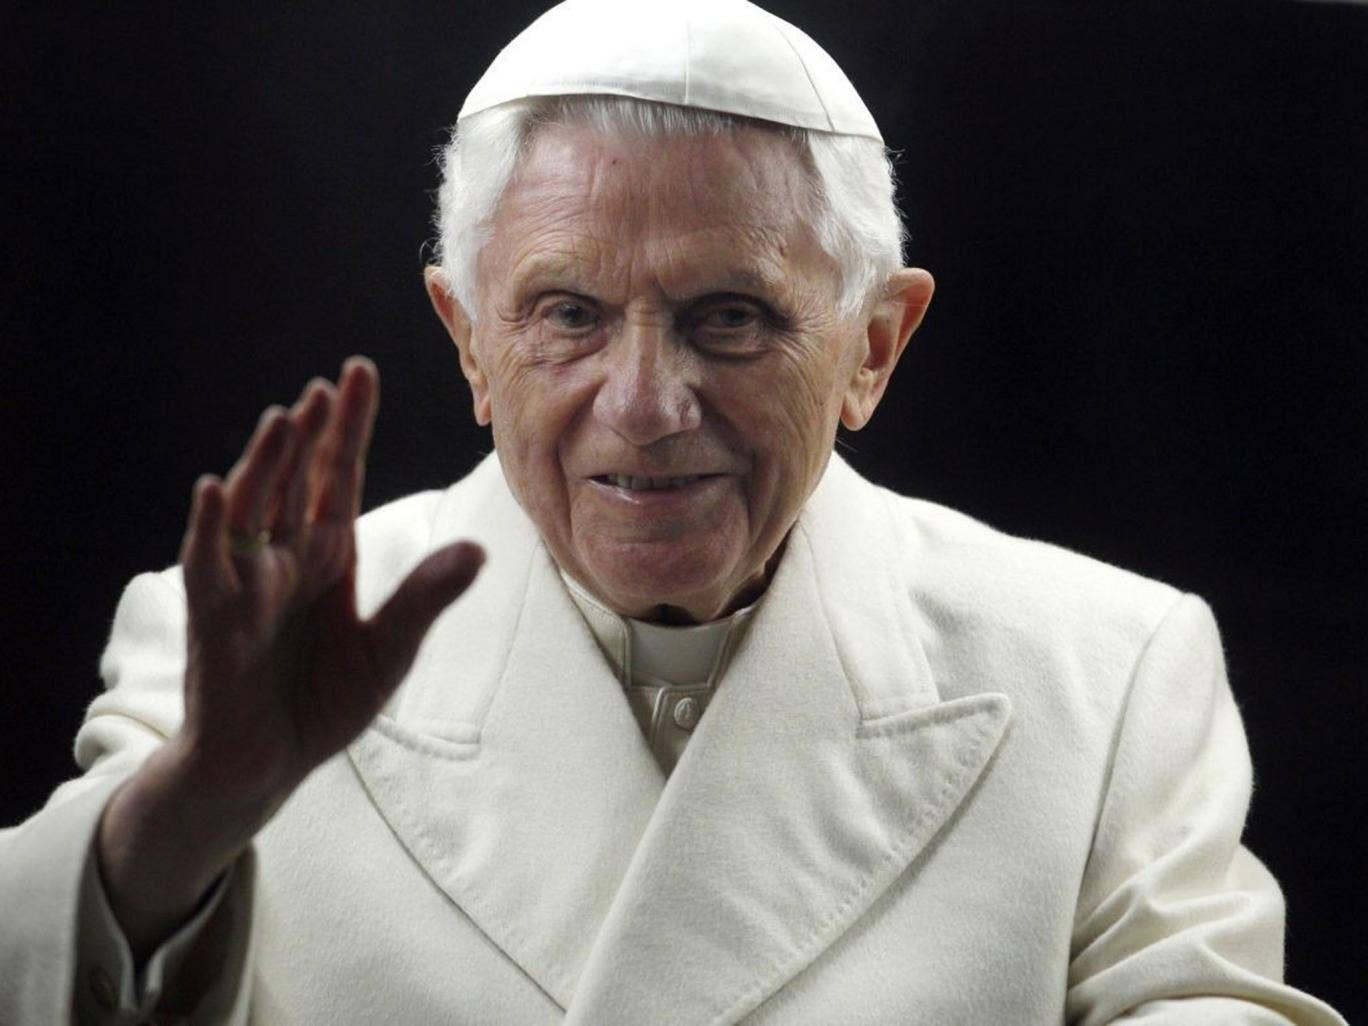 Pope Benedict: Record attacked at UN